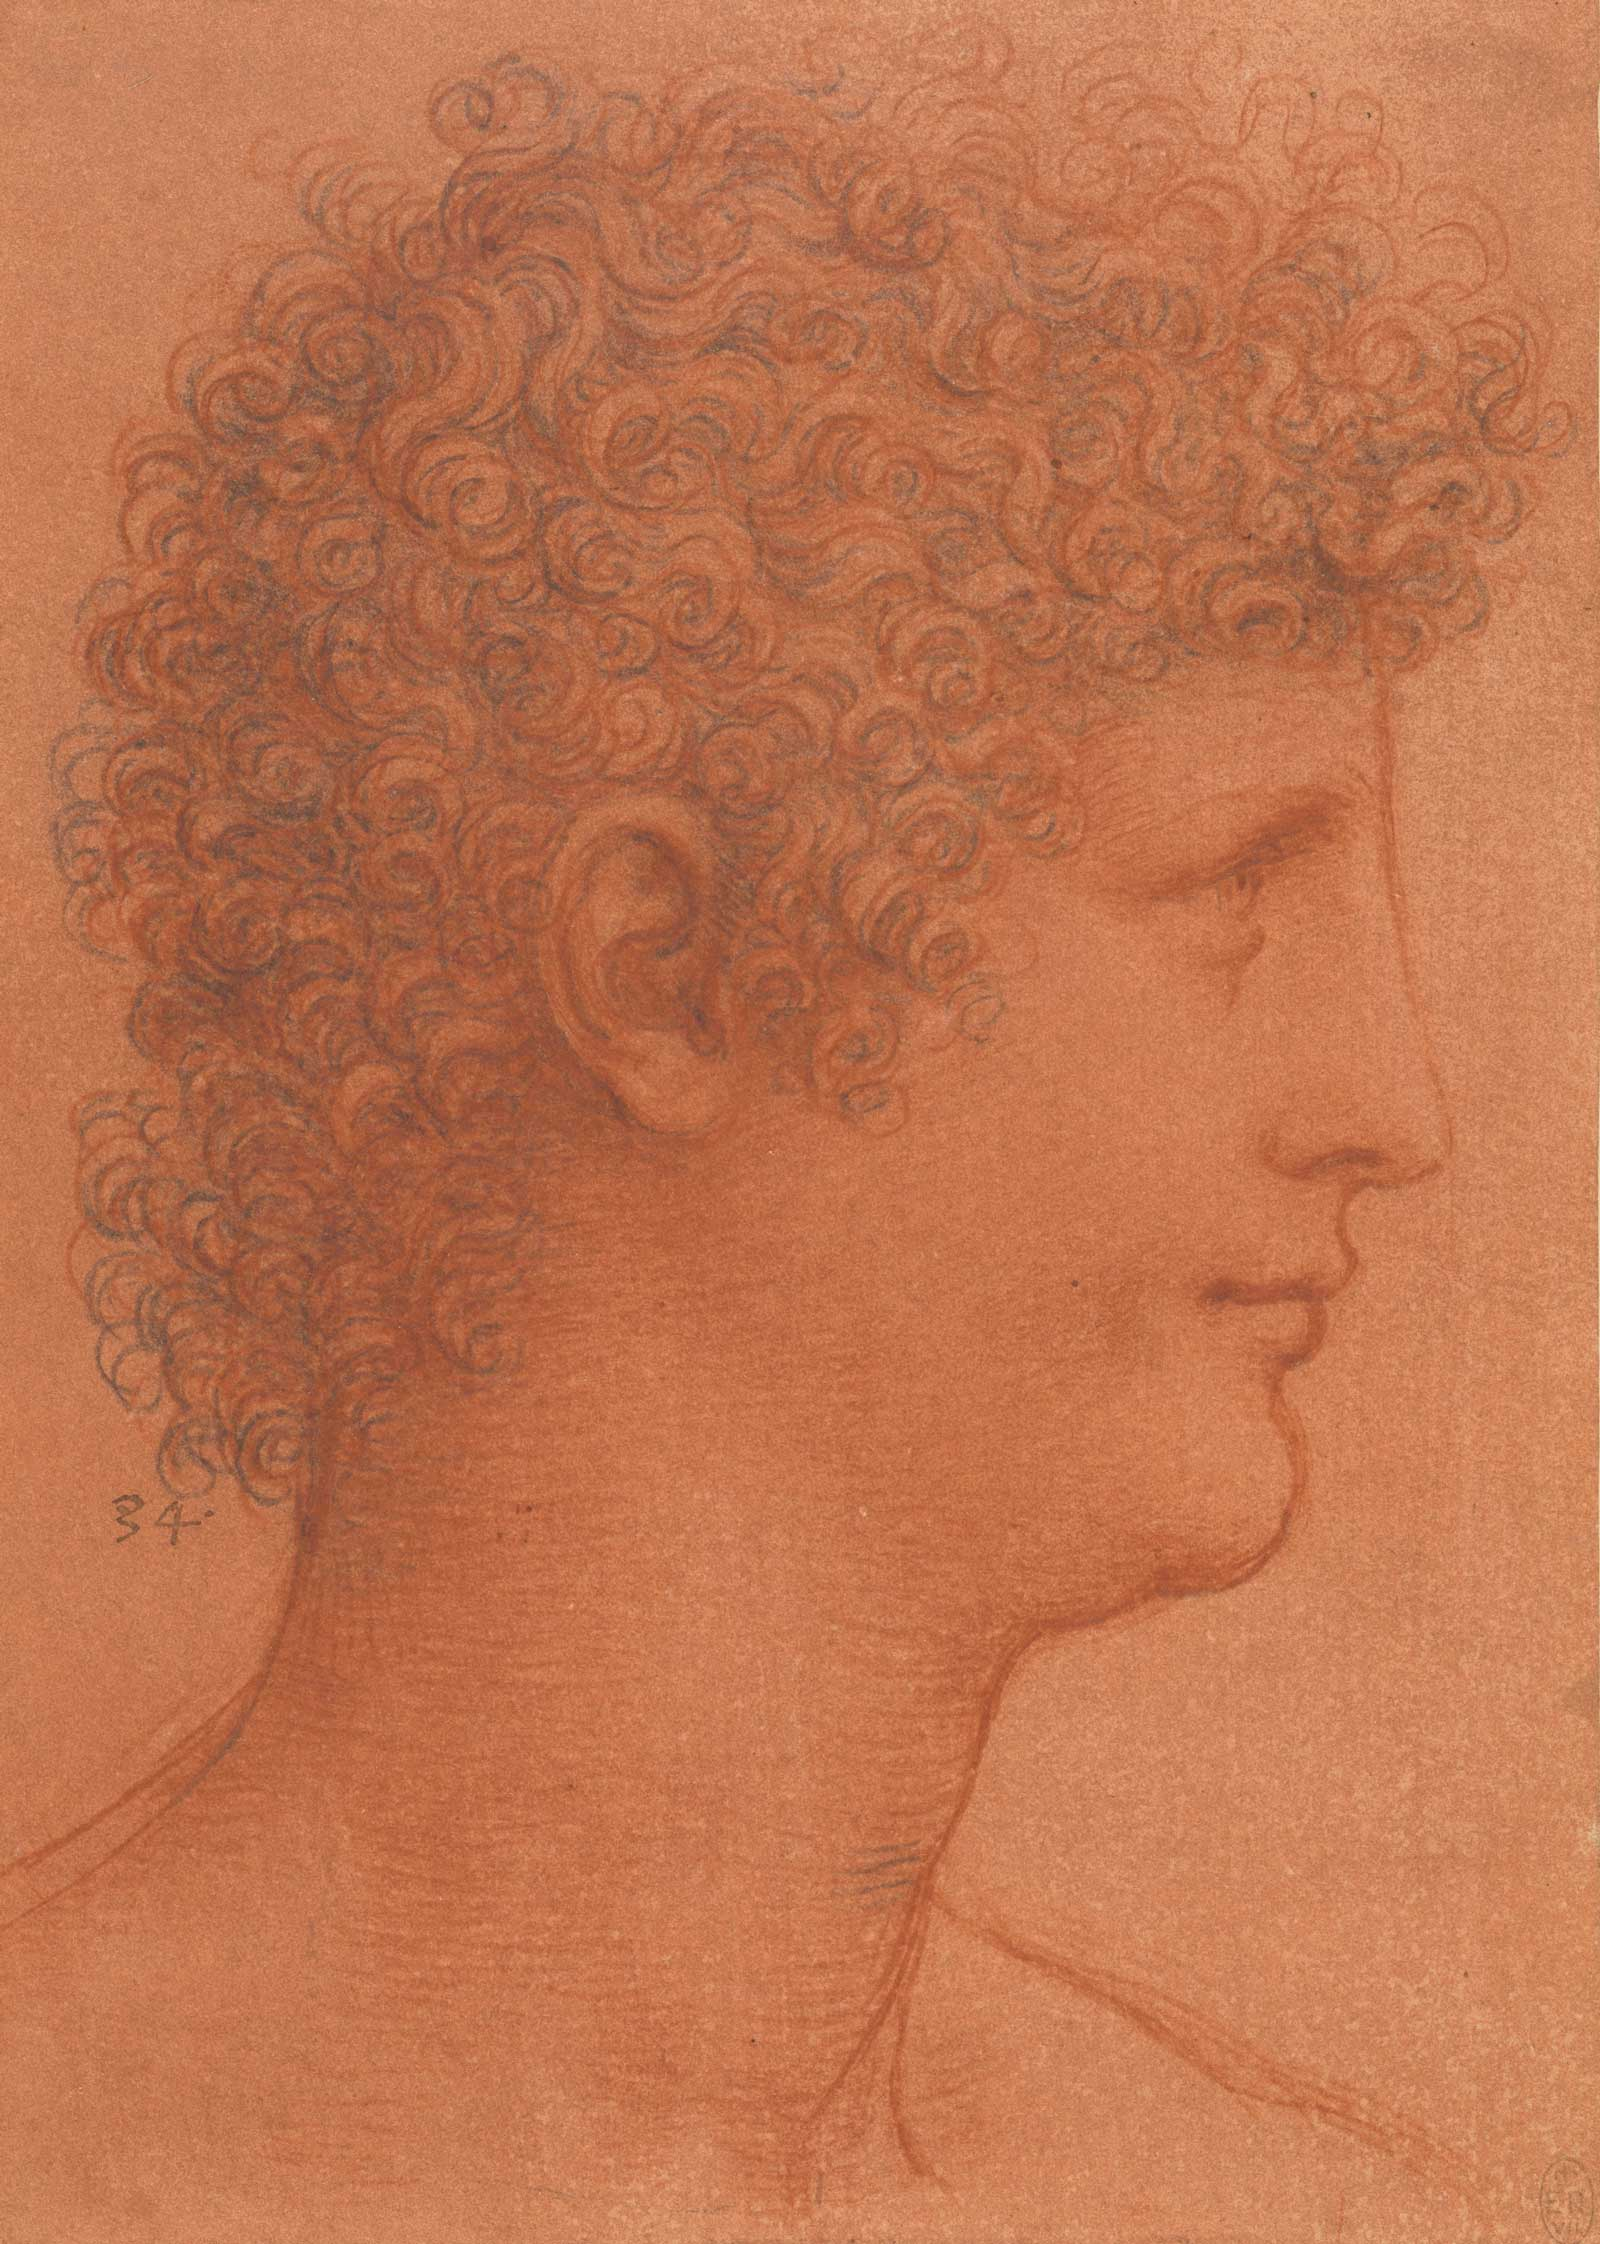 The head of a youth, c.1510, red and black chalks on orange-red prepared paper by Leonardo da Vinci, to be displayed at Manchester Art Gallery